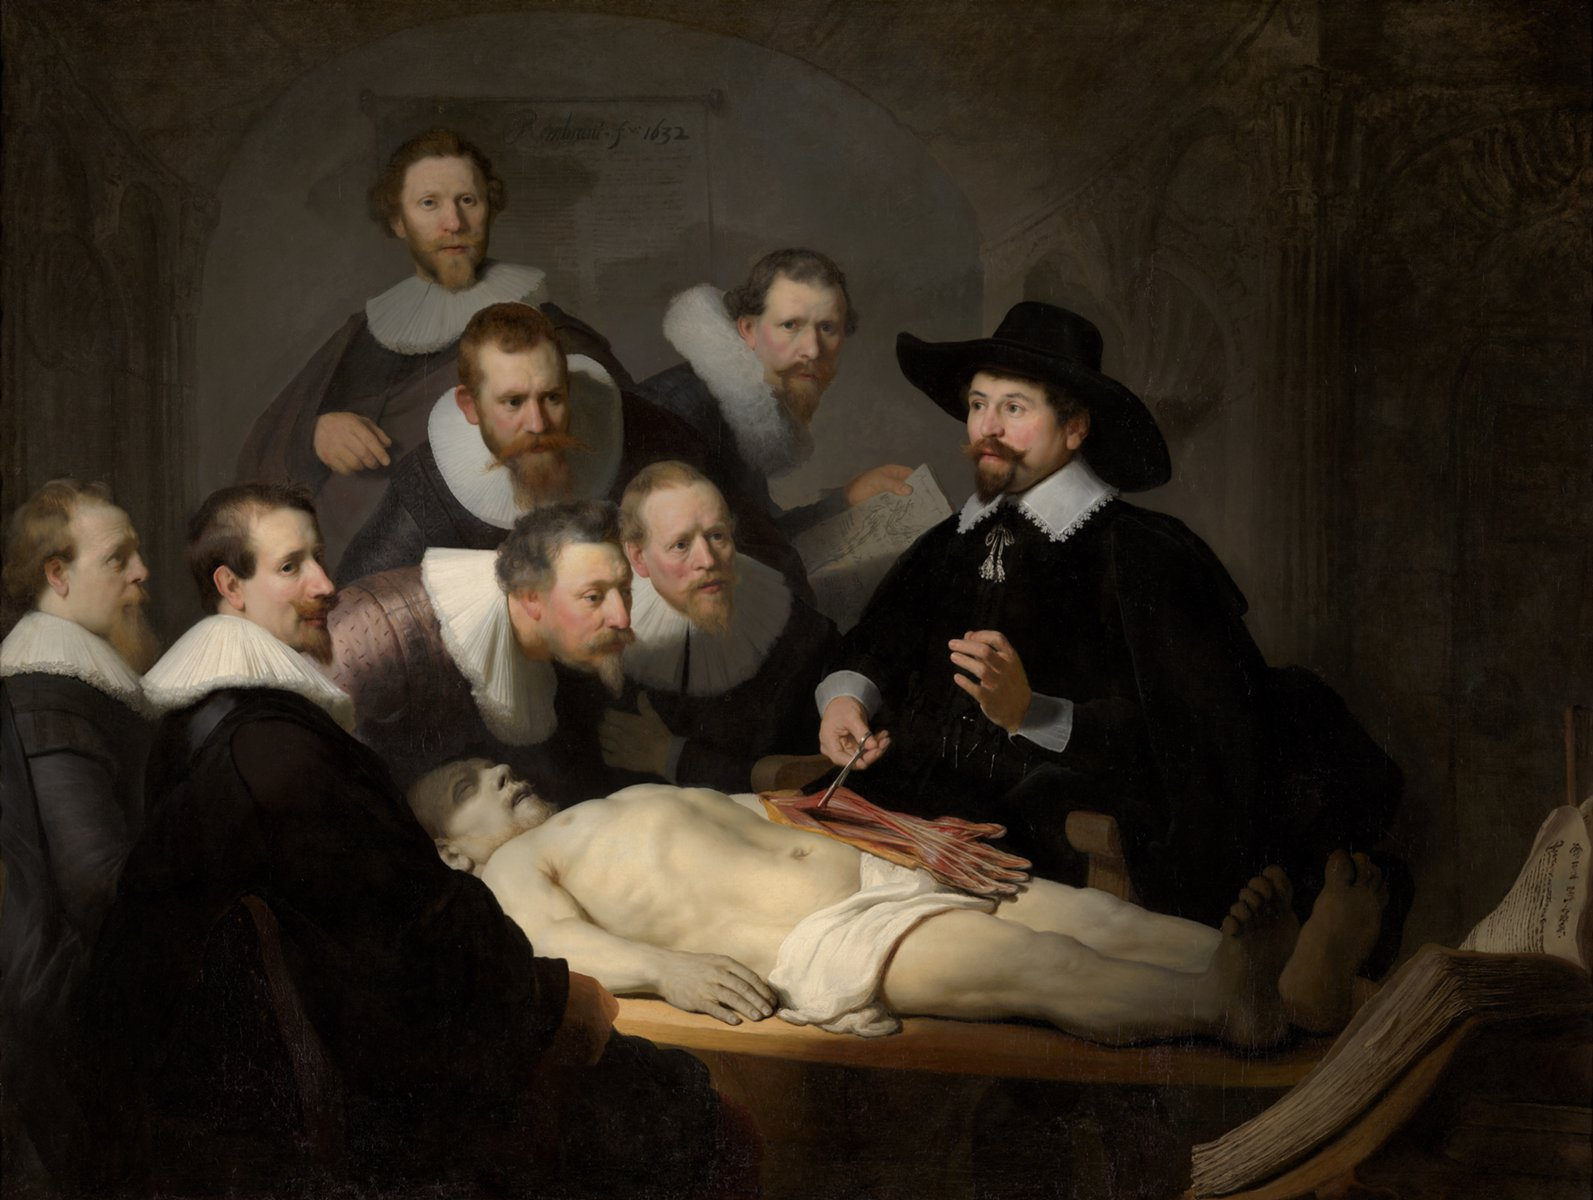 Rembrandt_-_The_Anatomy_Lesson_of_Dr_Nicolaes_Tulp 1